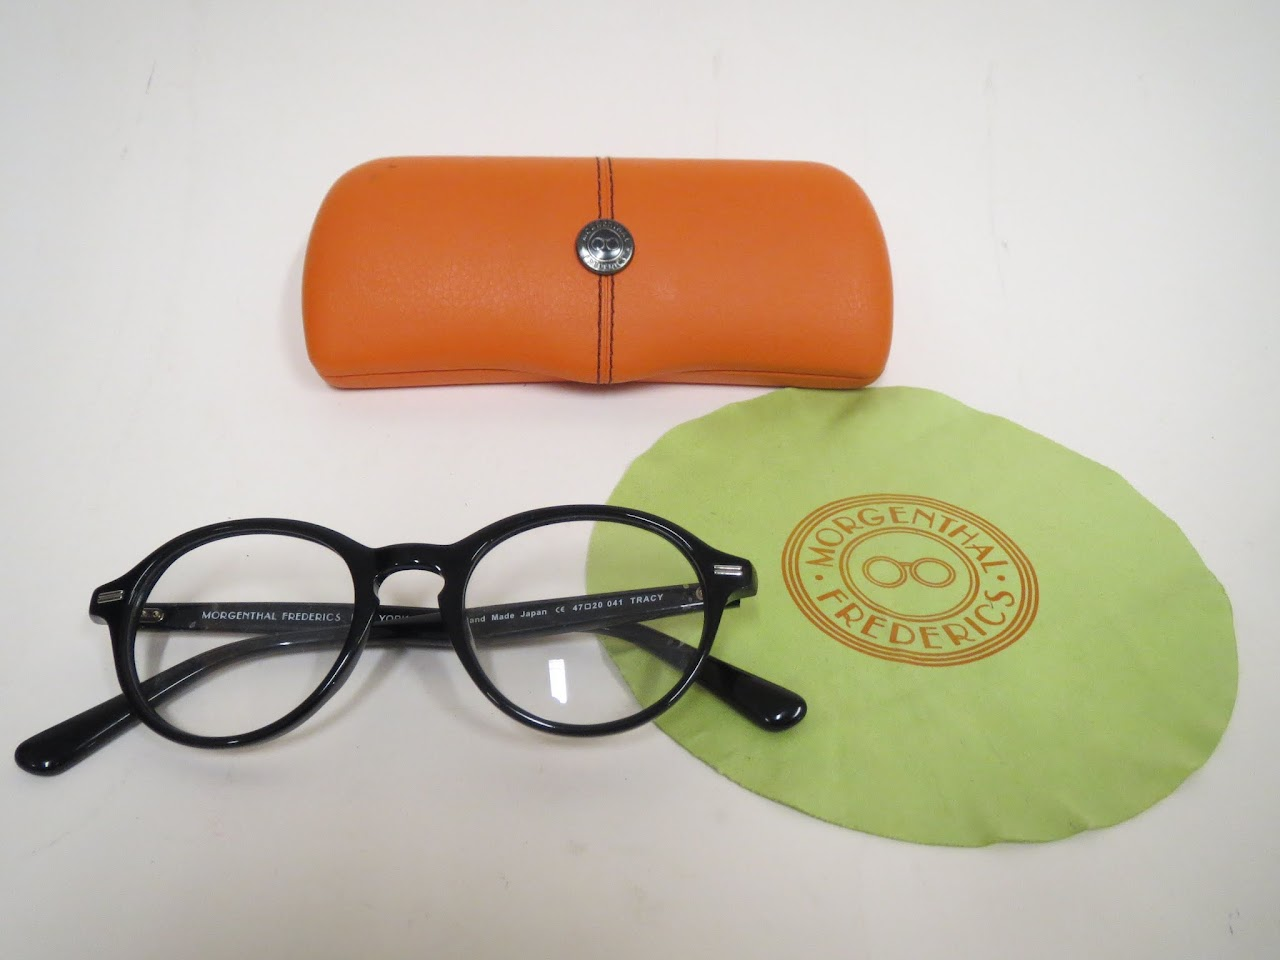 Morgenthal Frederics 'Tracy' Glasses